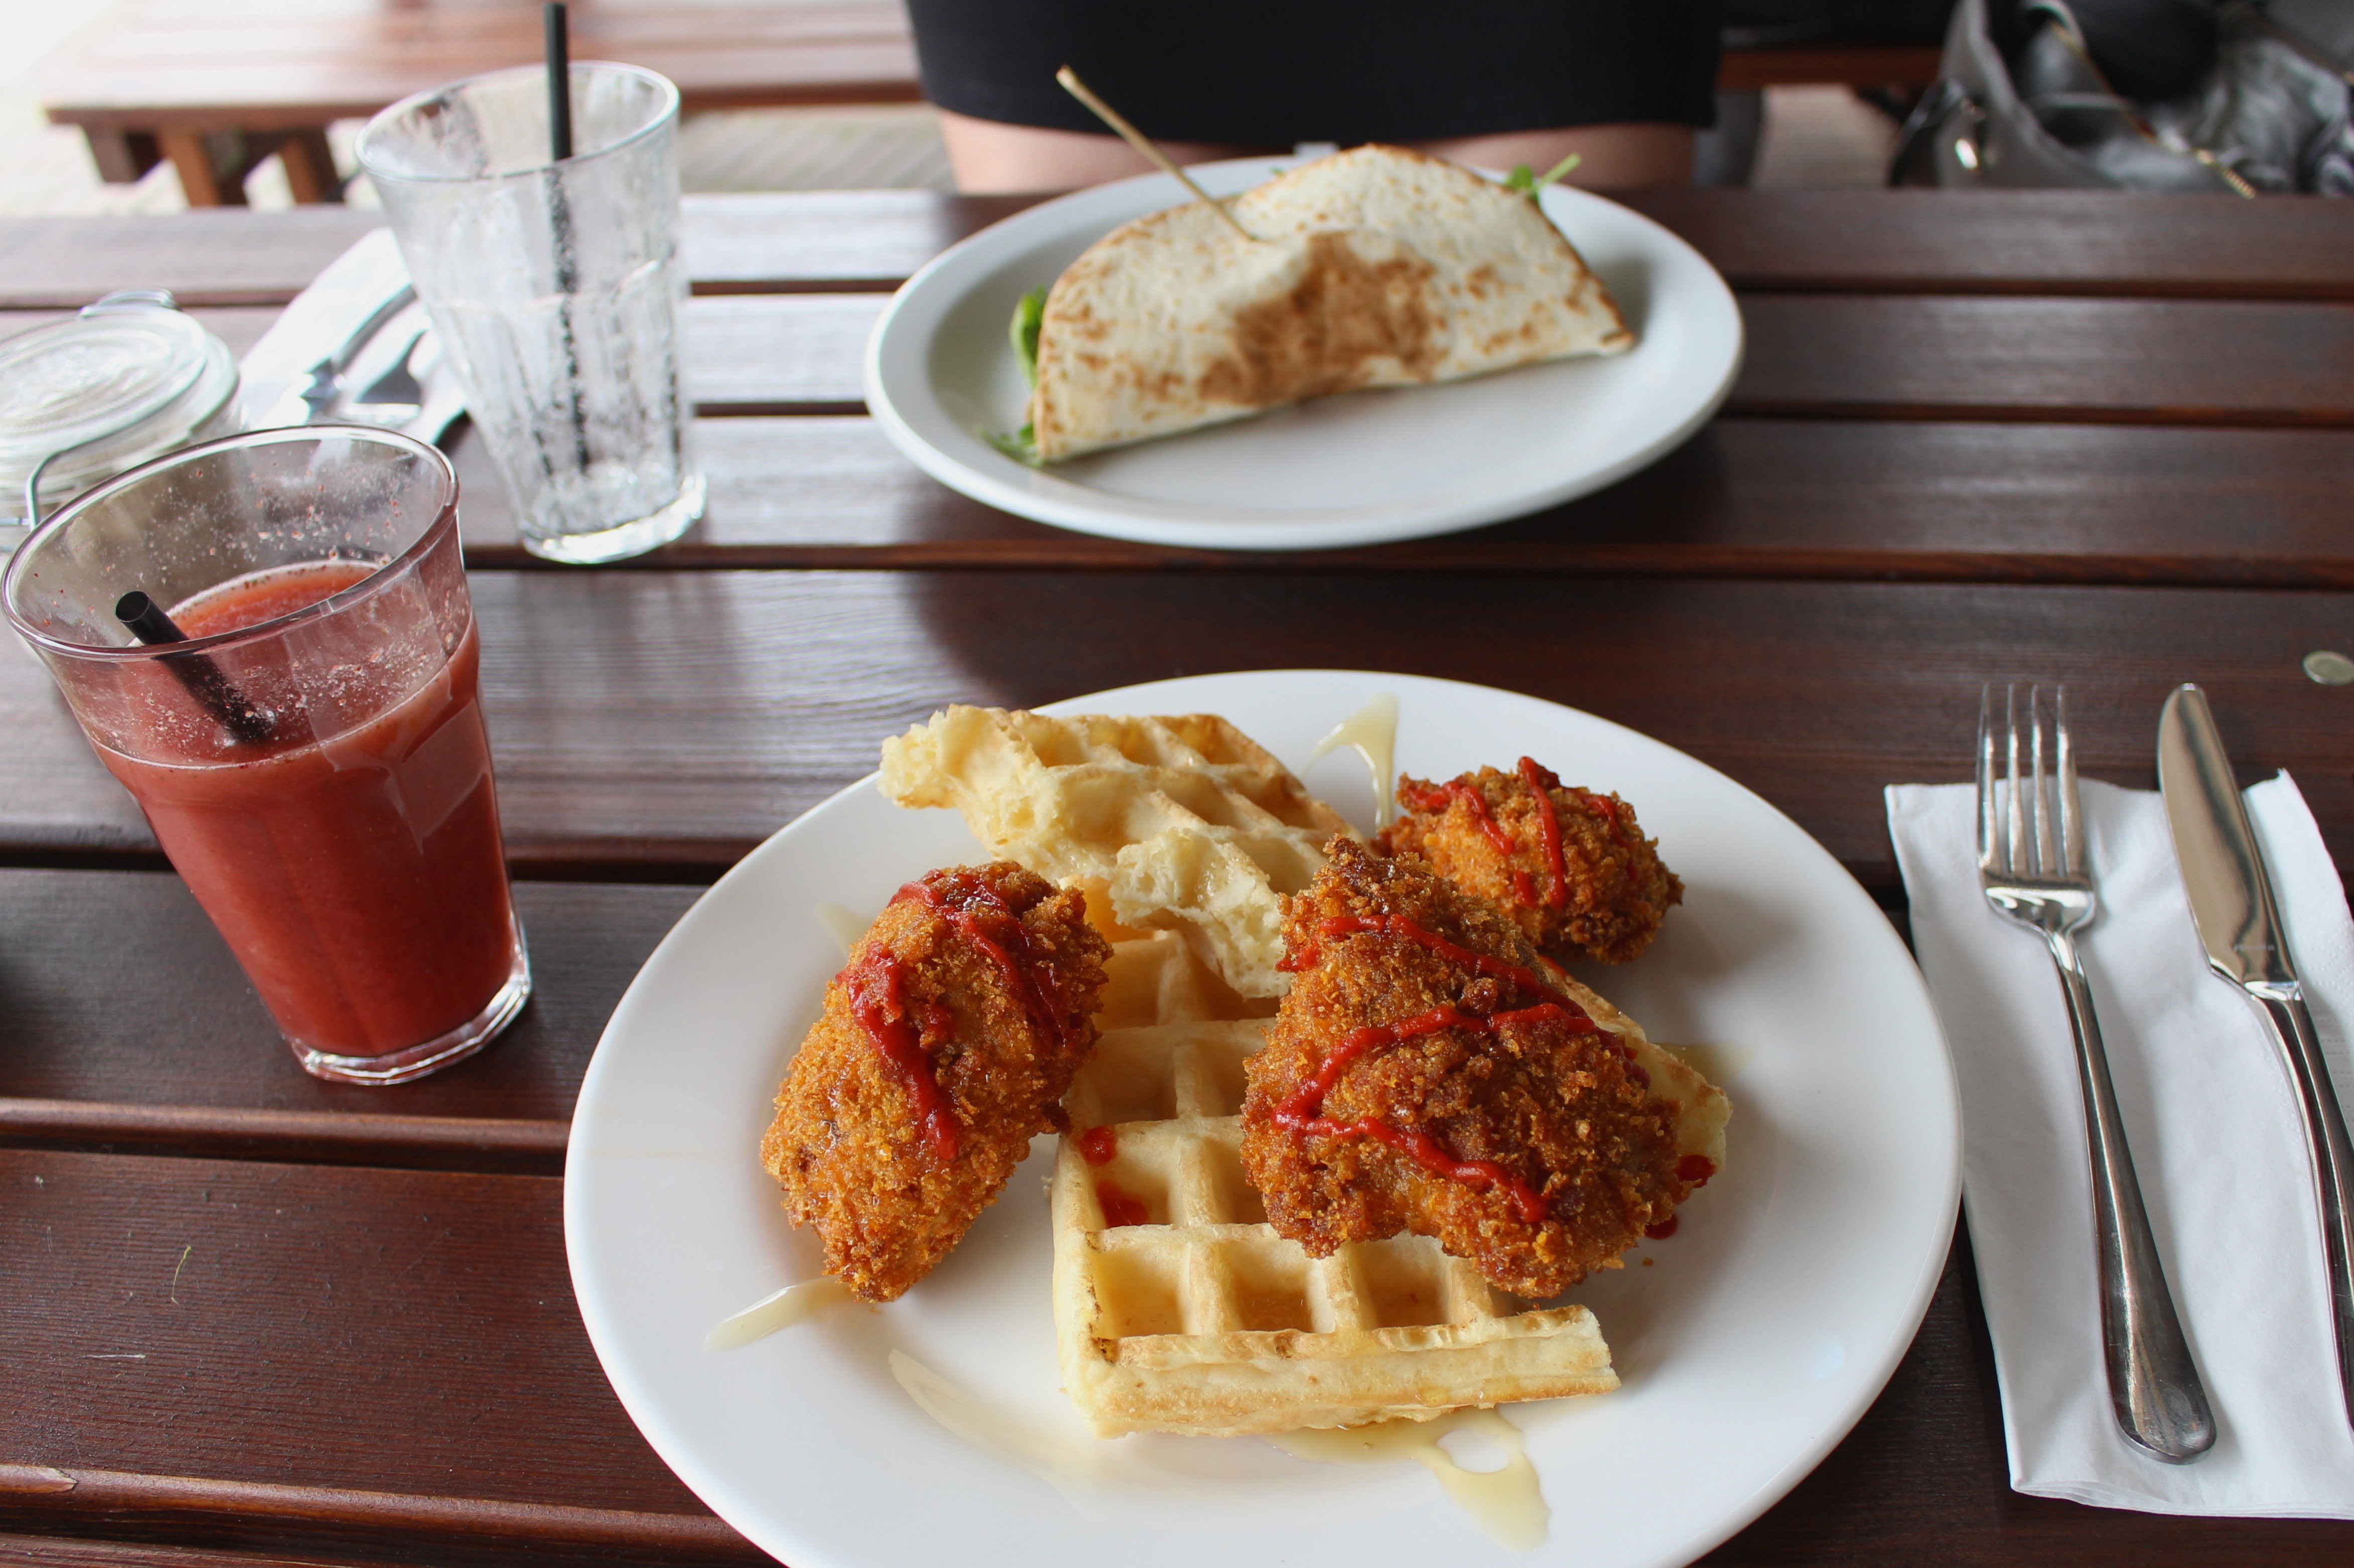 Chicken and waffles in Amsterdam